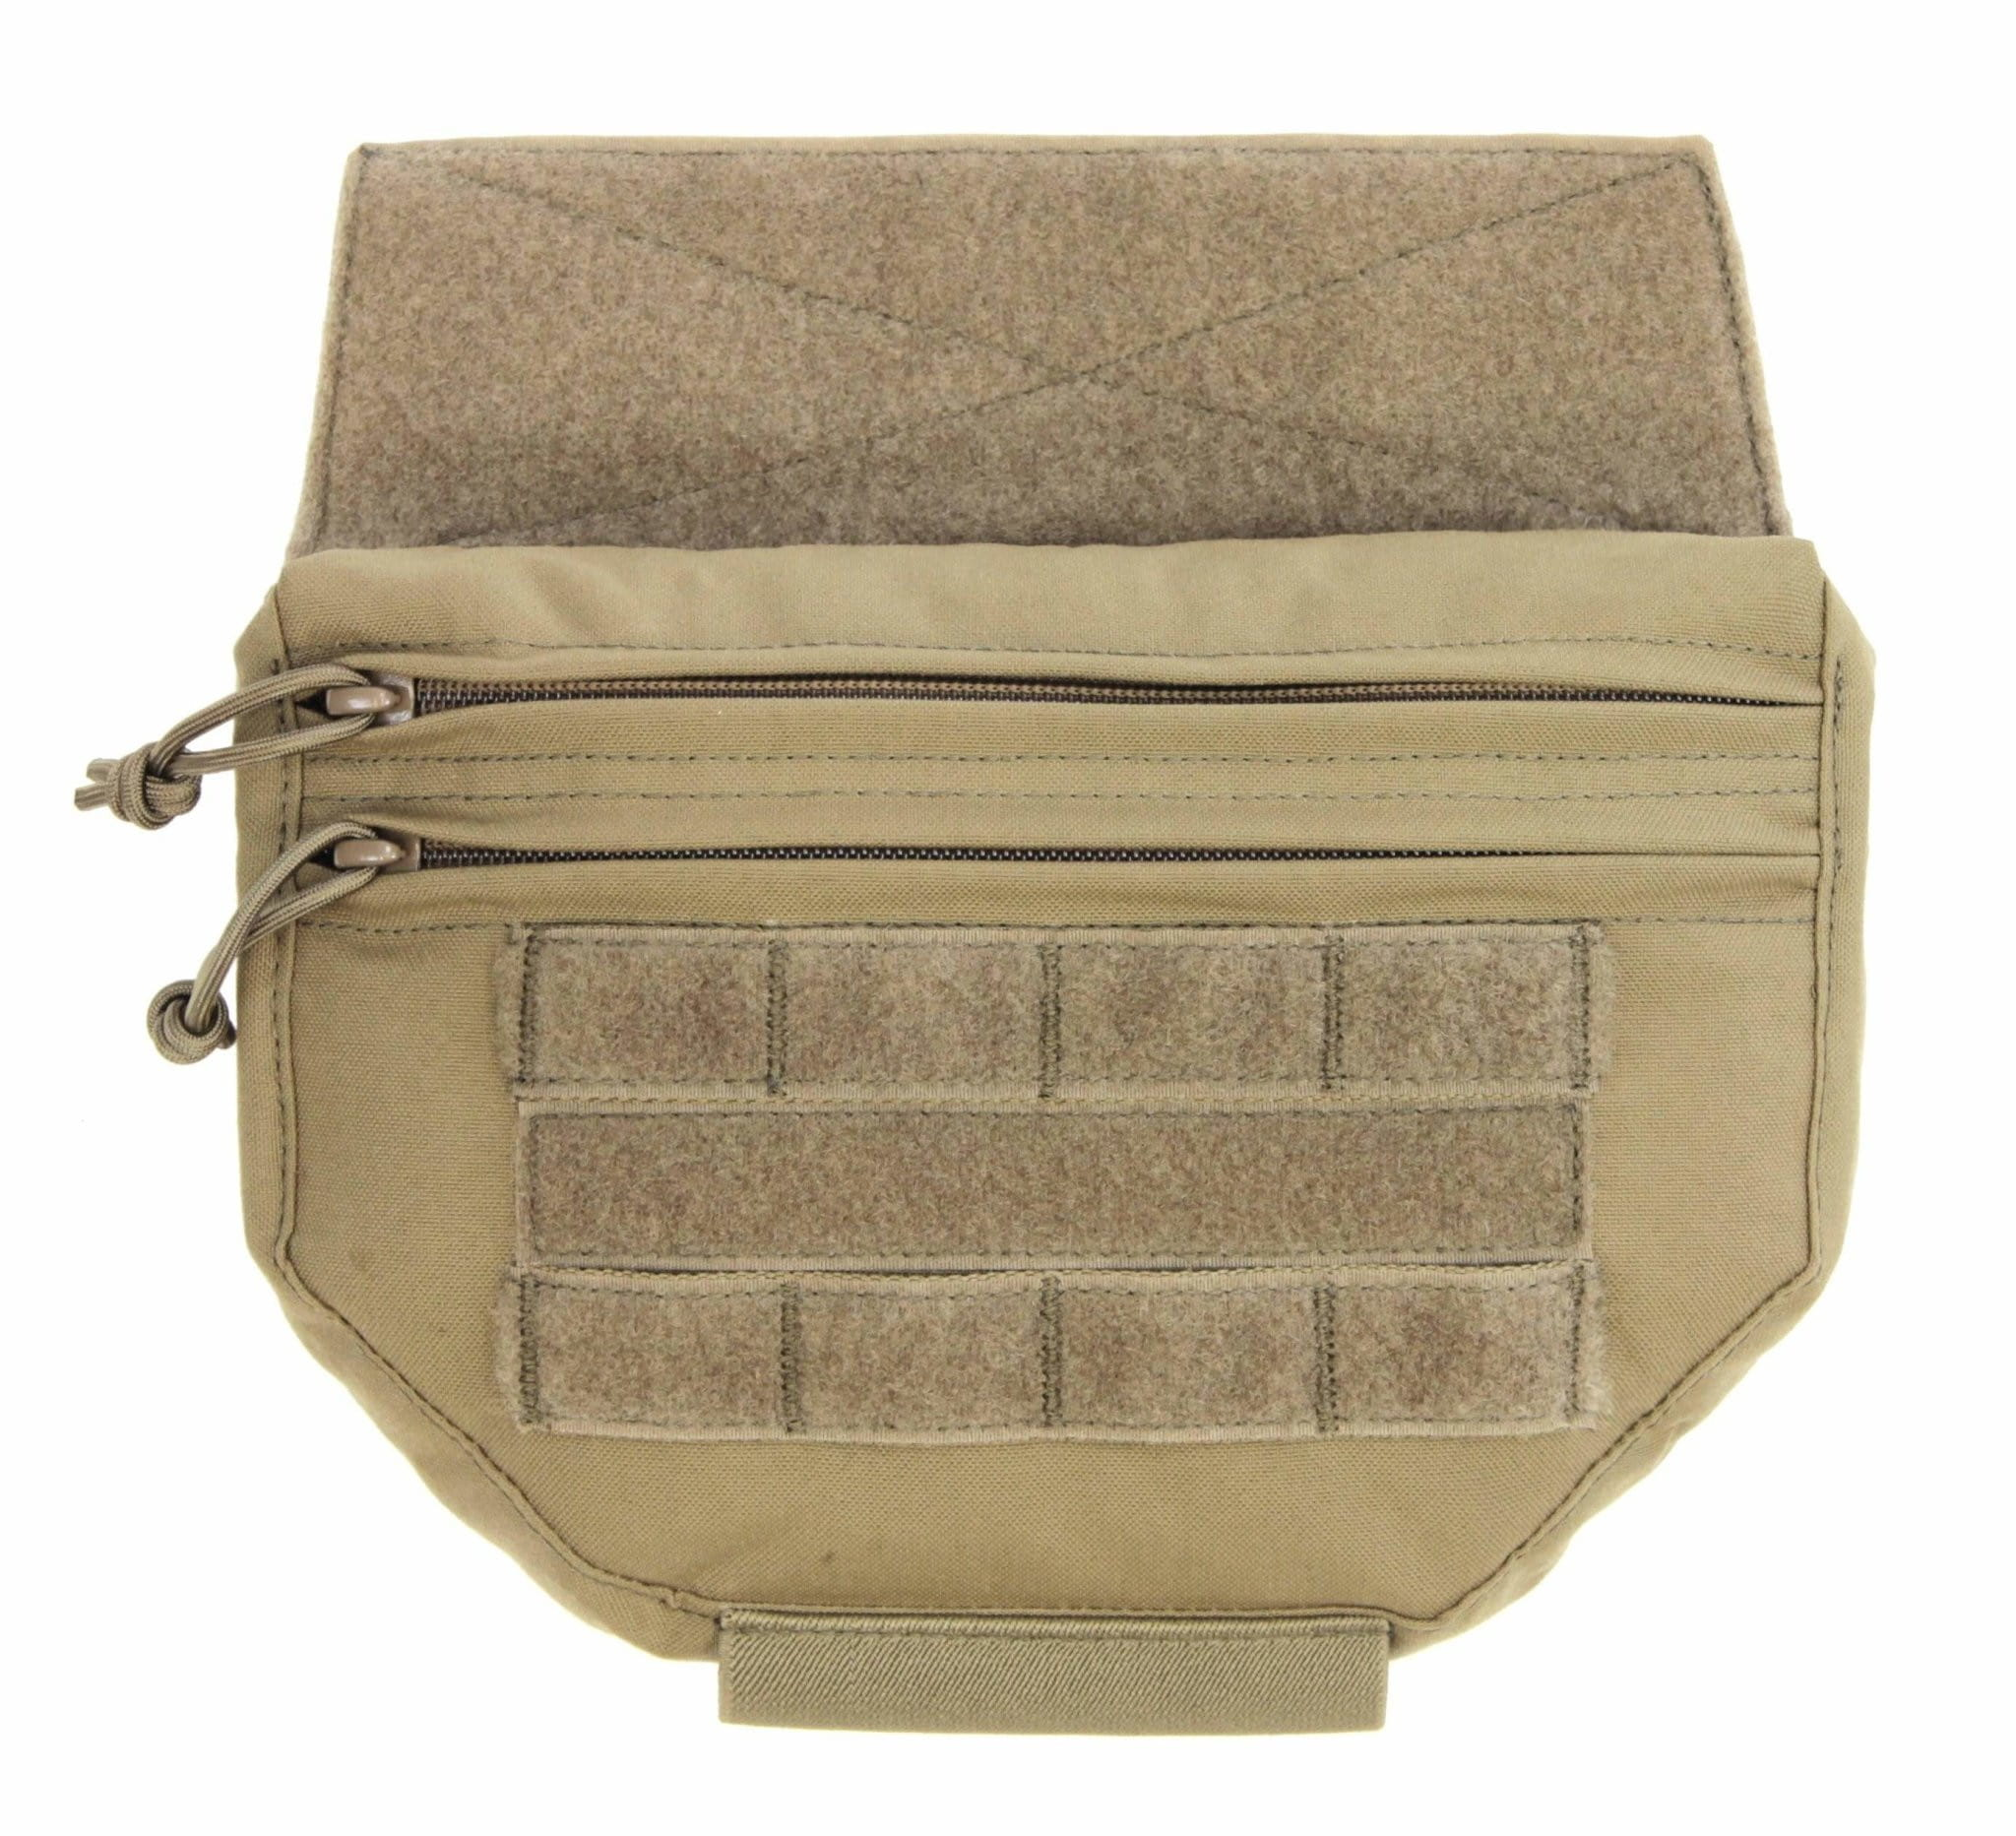 Warrior Assault Systems Drop Down Utility Pouch - CHK-SHIELD | Outdoor Army - Tactical Gear Shop